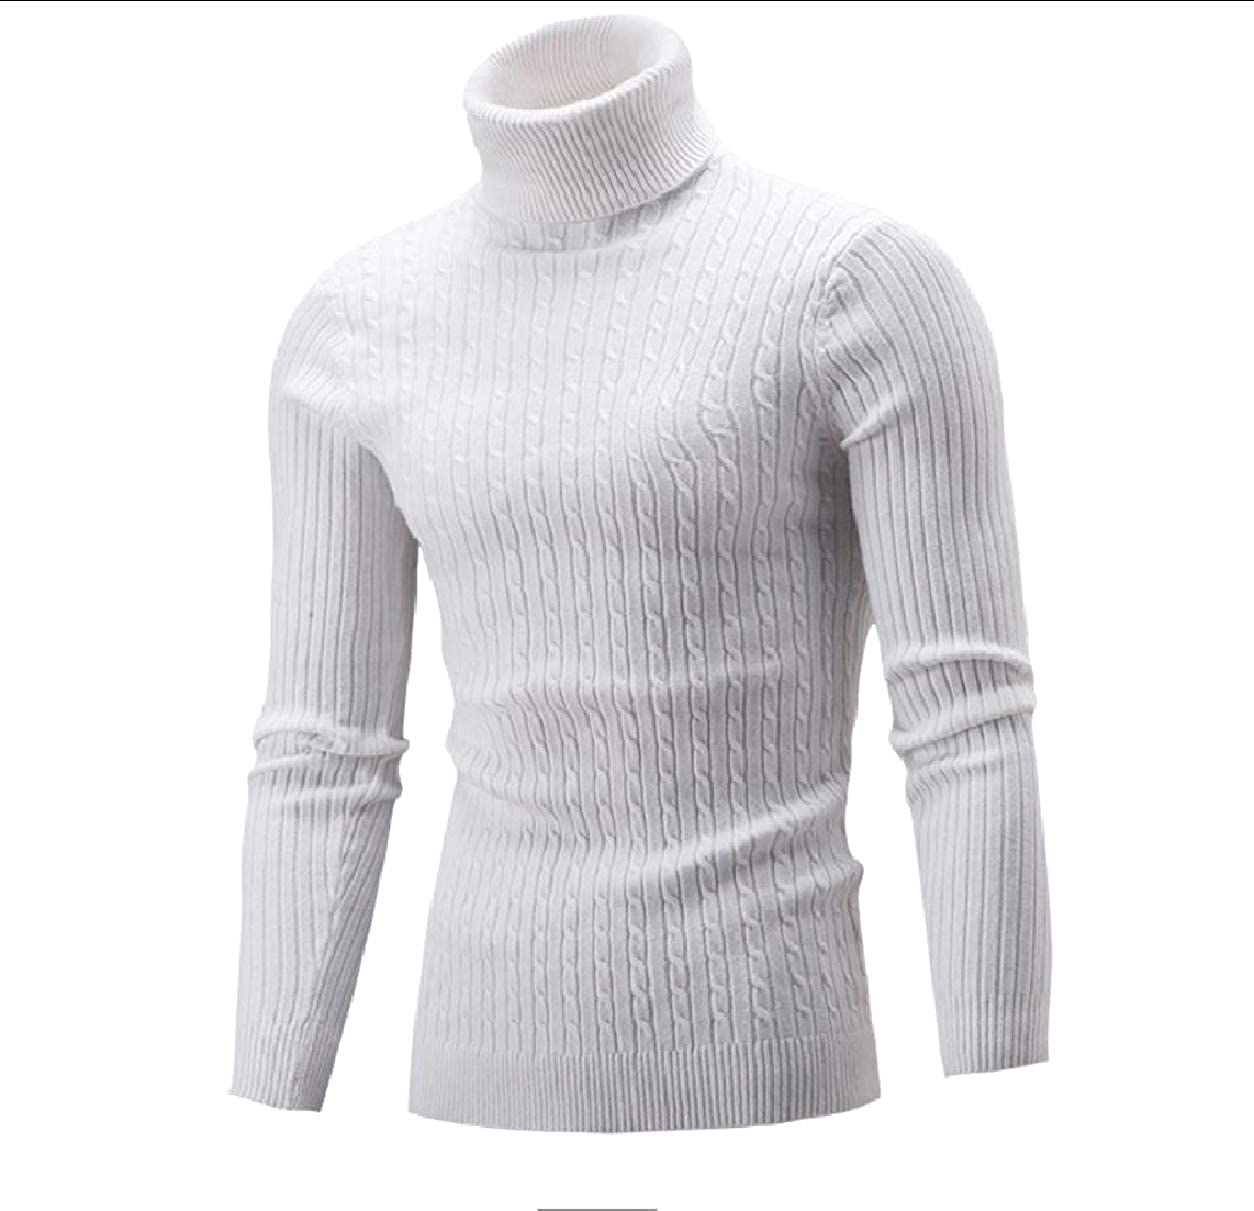 SportsX Men Turtleneck Basic Style Solid Long Sleeve Knitted Sweater